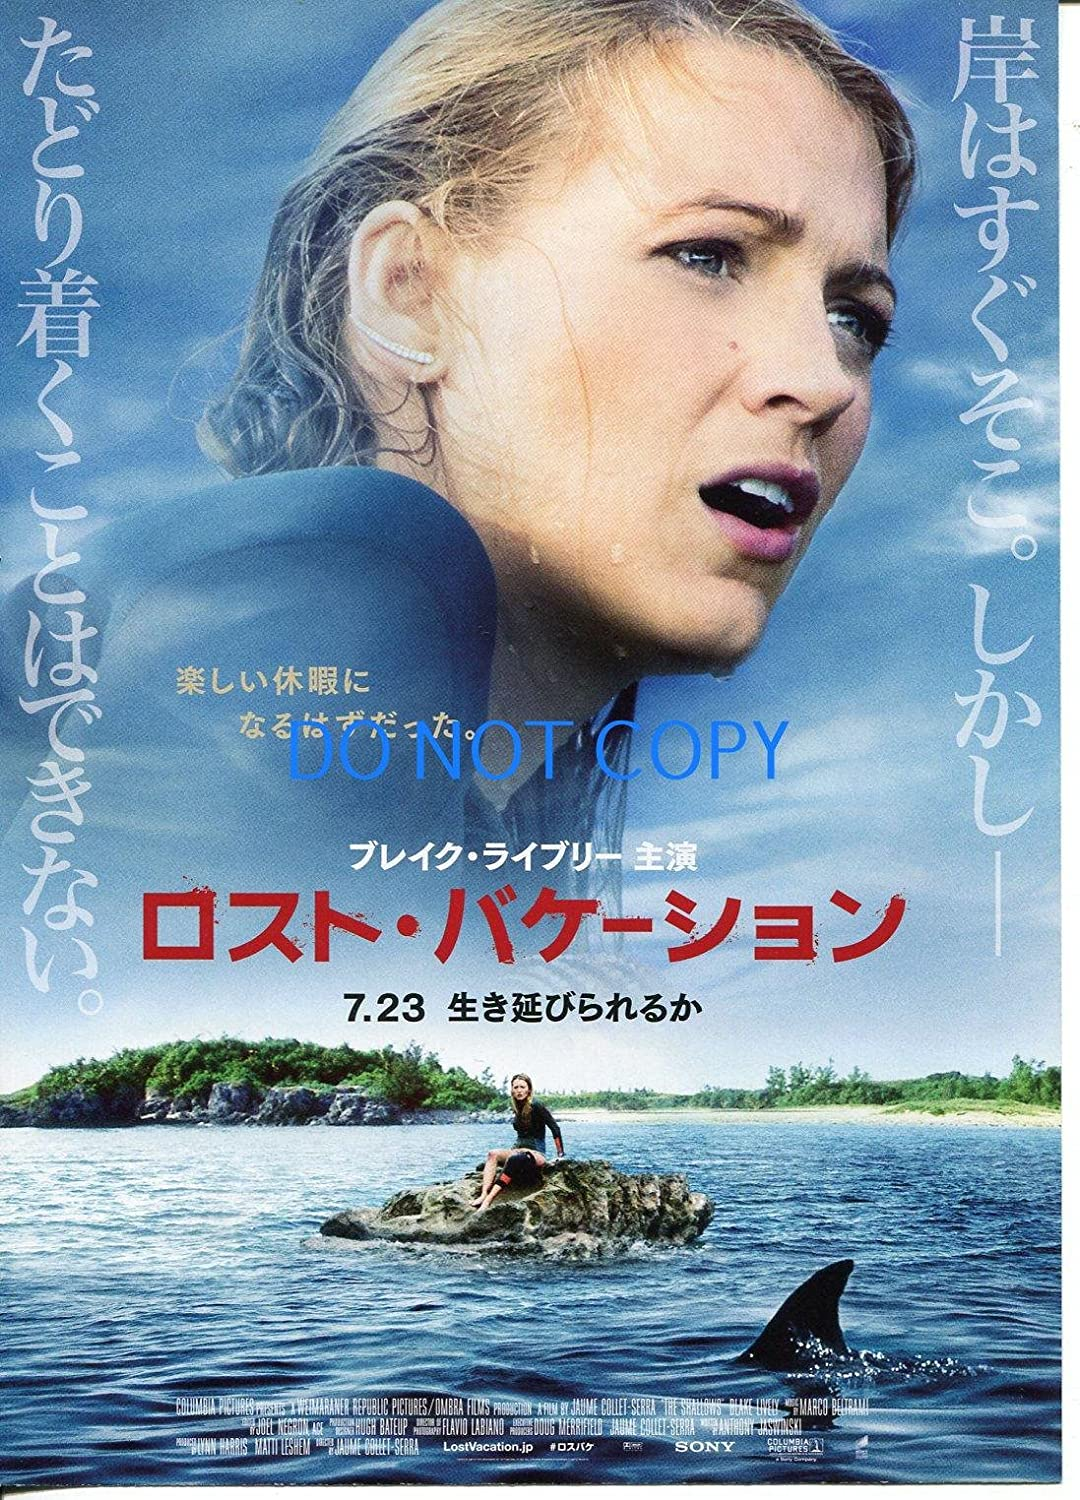 Blake Lively Sexy The Shallows Original Japanese Japan Press Mini ...